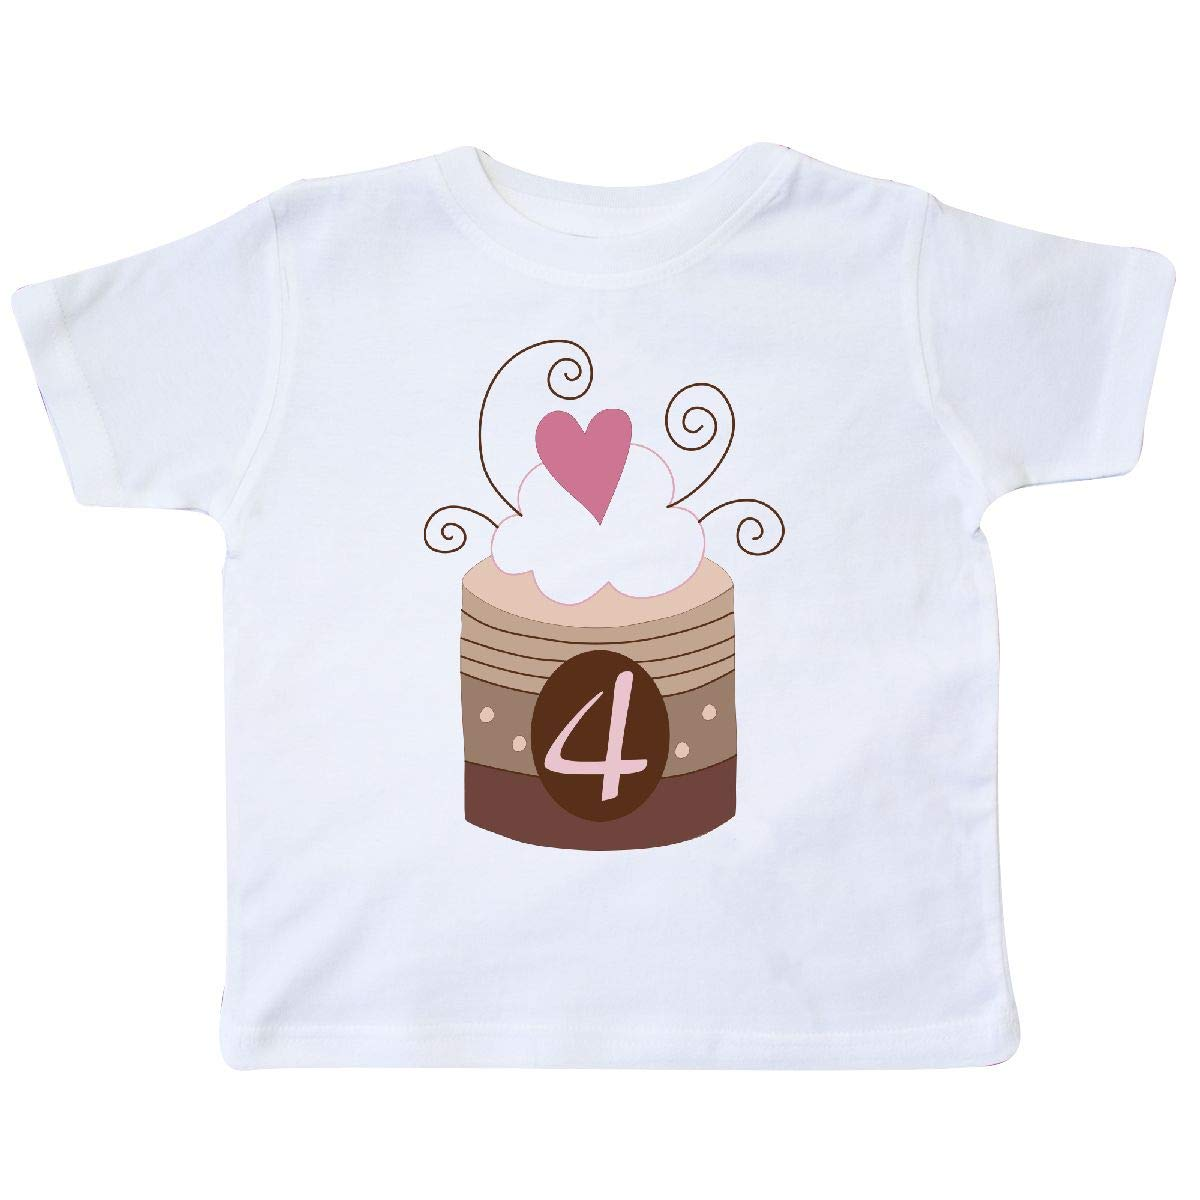 inktastic Cupcake 4th Birthday Toddler T-Shirt